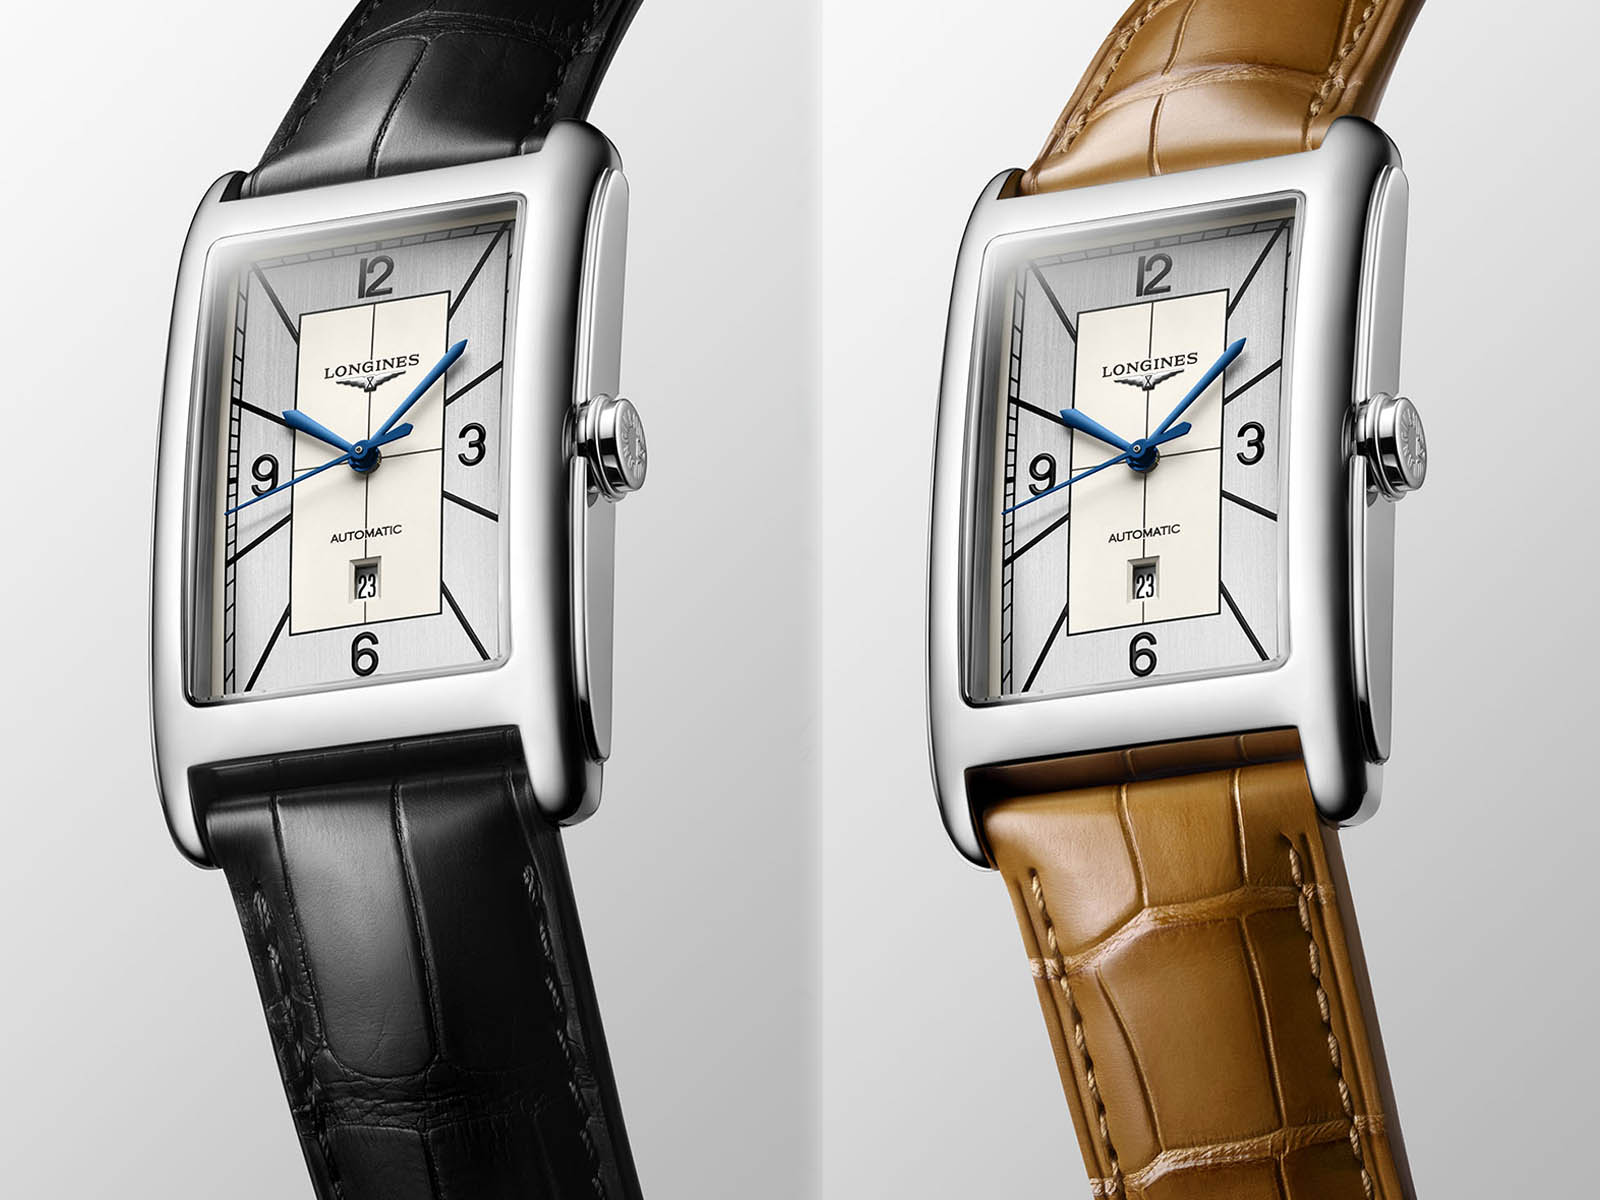 longines-dolcevita-automatic-art-deco-sector-dial-1.jpg